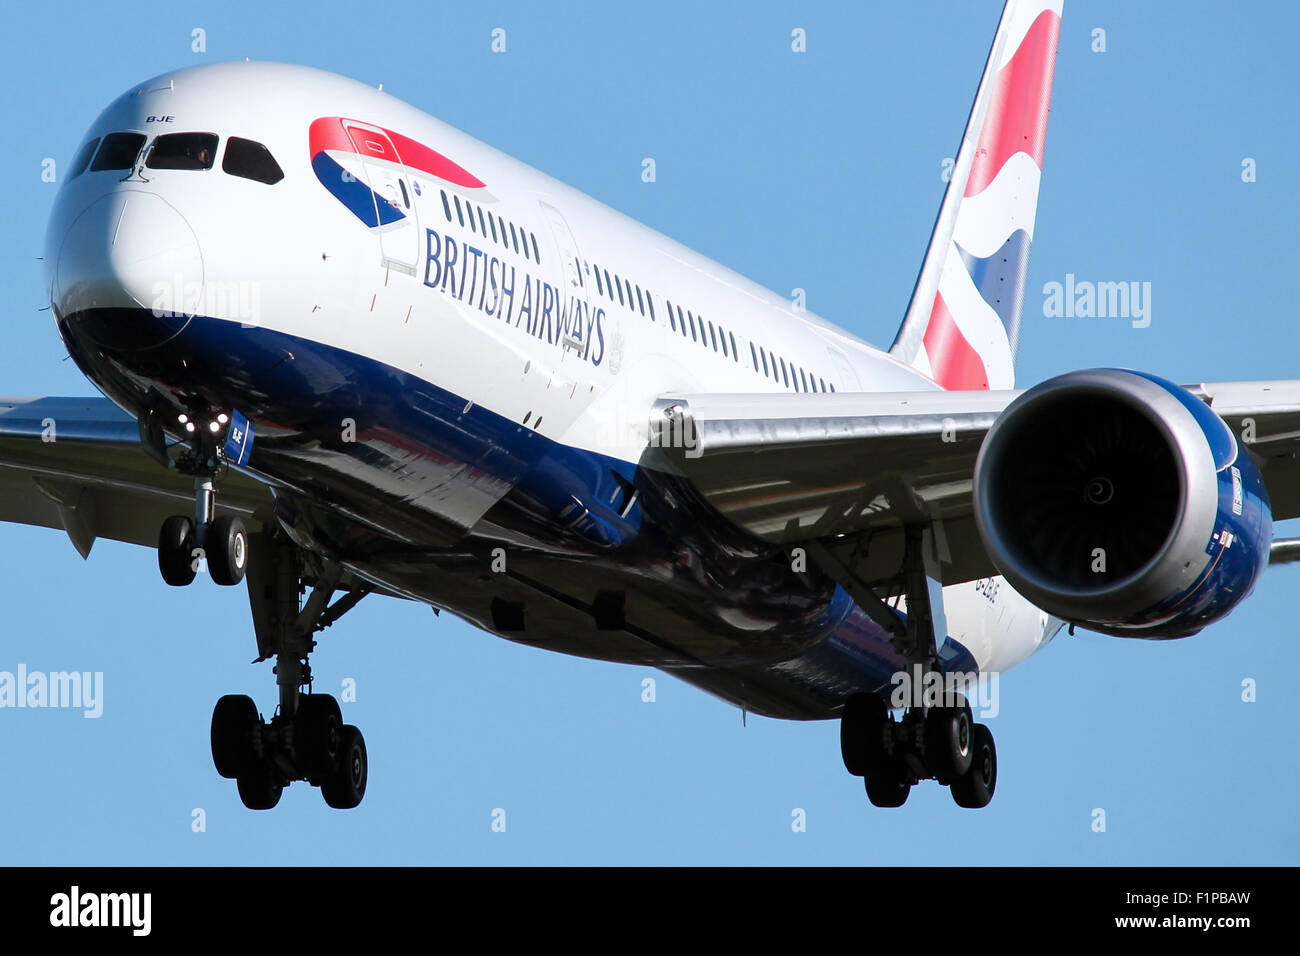 British Airways Boeing 787-8 approaches runway 27L at London Heathrow airport. - Stock Image